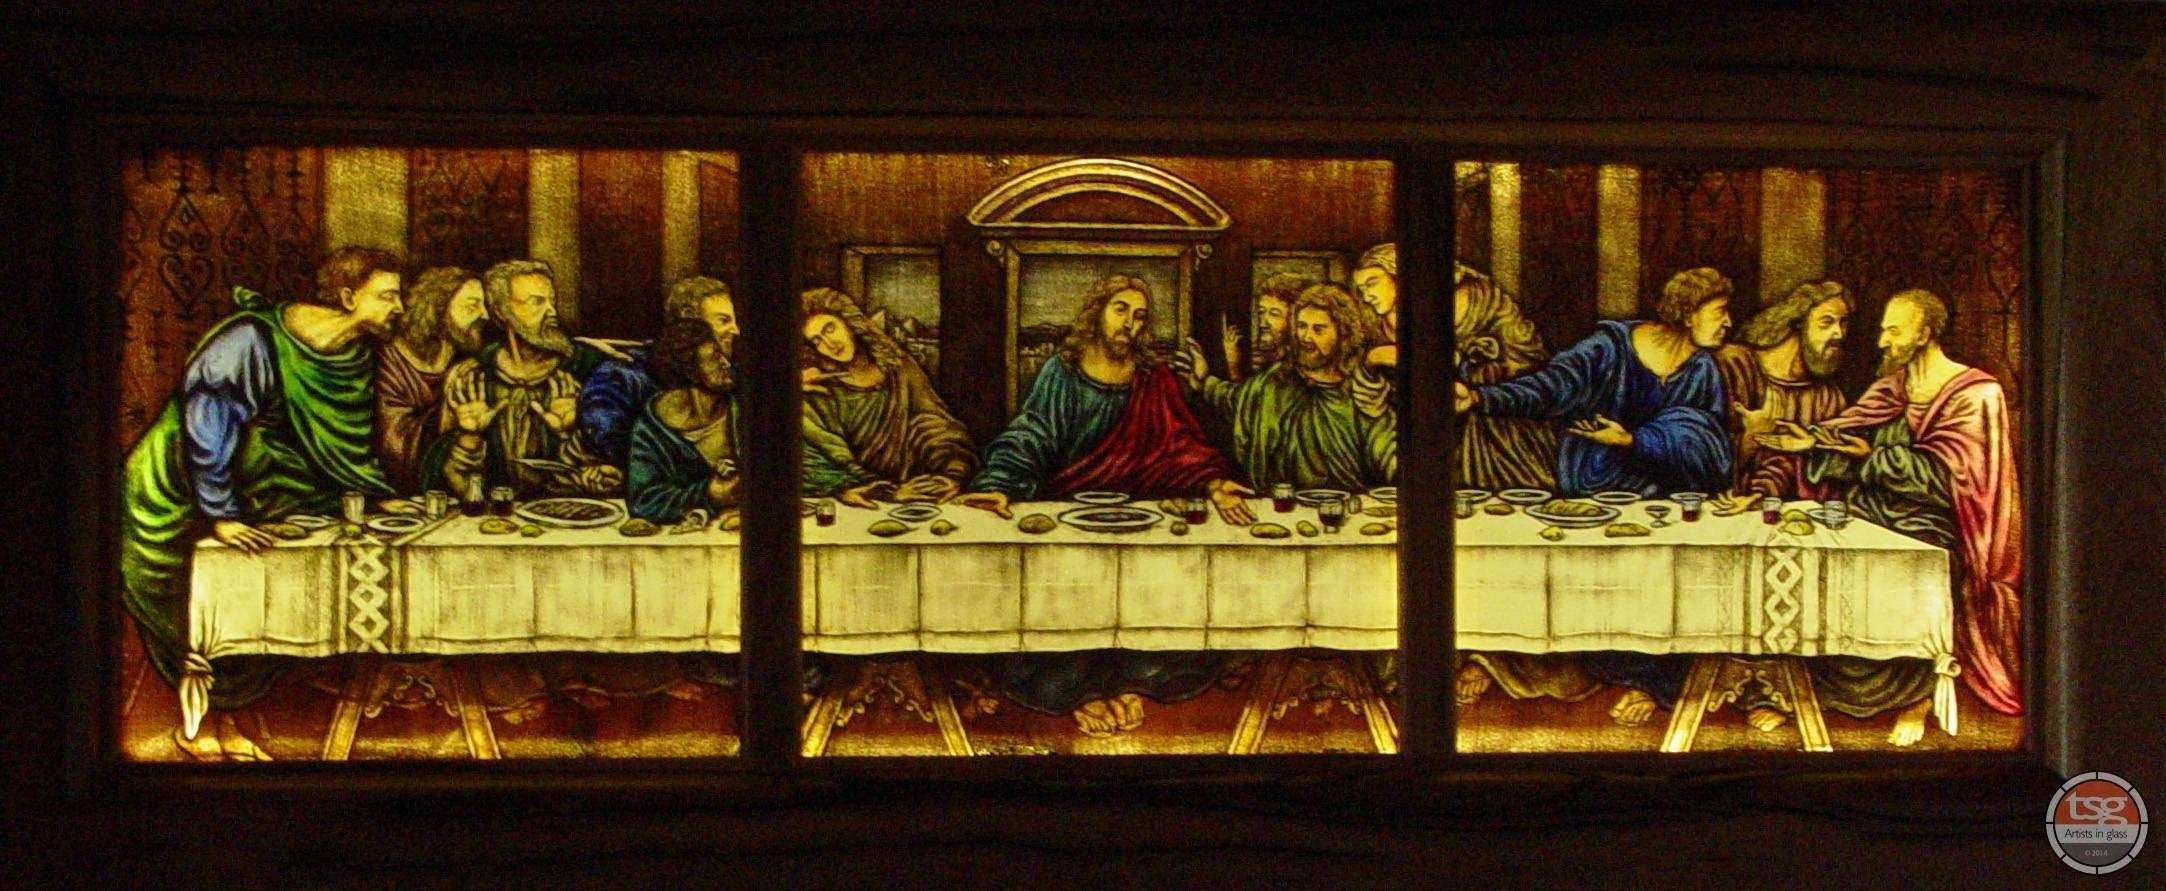 20 Inspirations of The Last Supper Wall Art